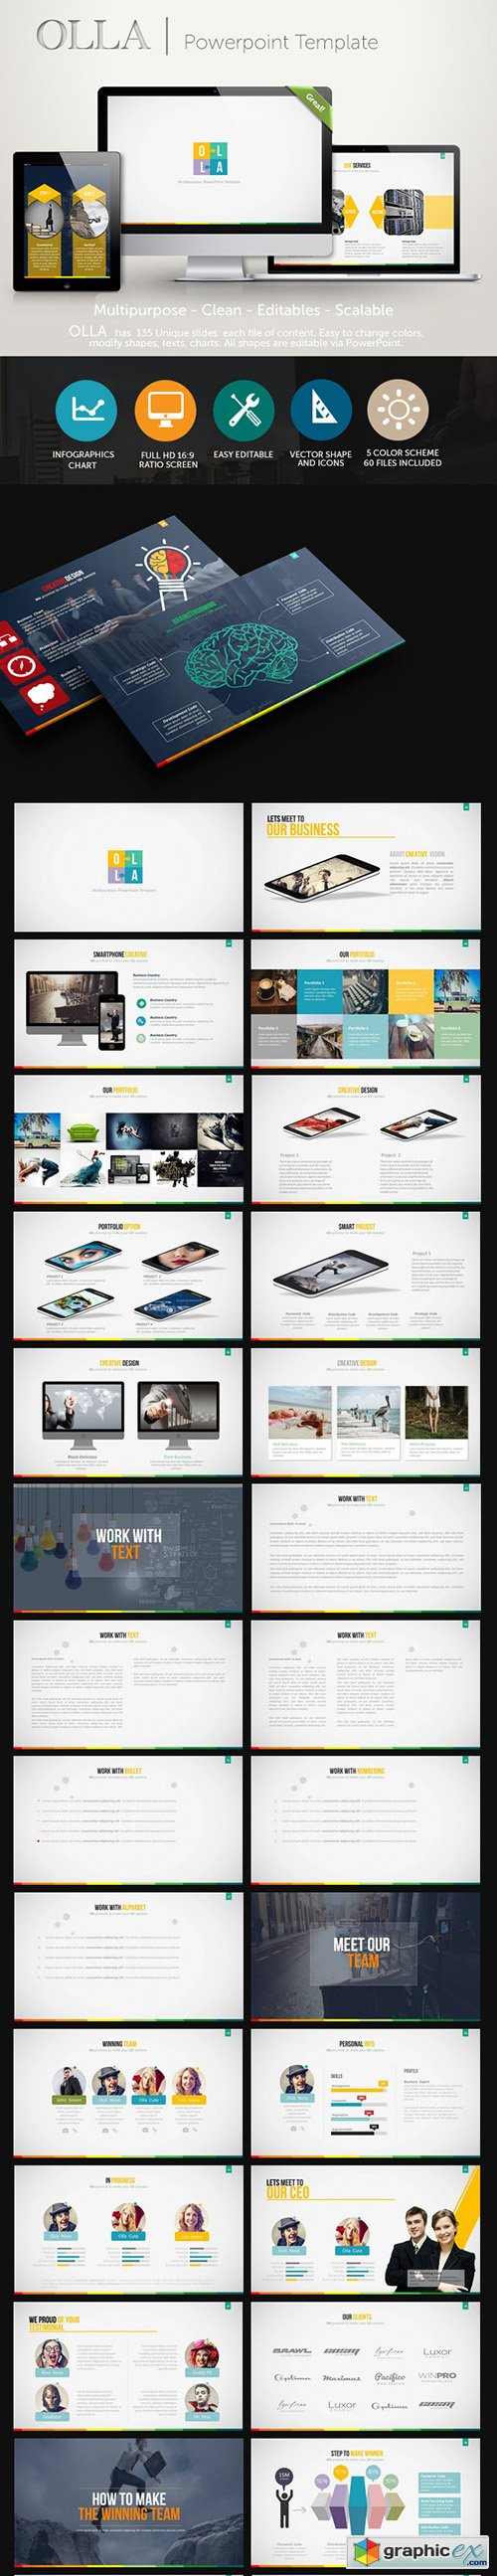 Olla PowerPoint Presentation Template